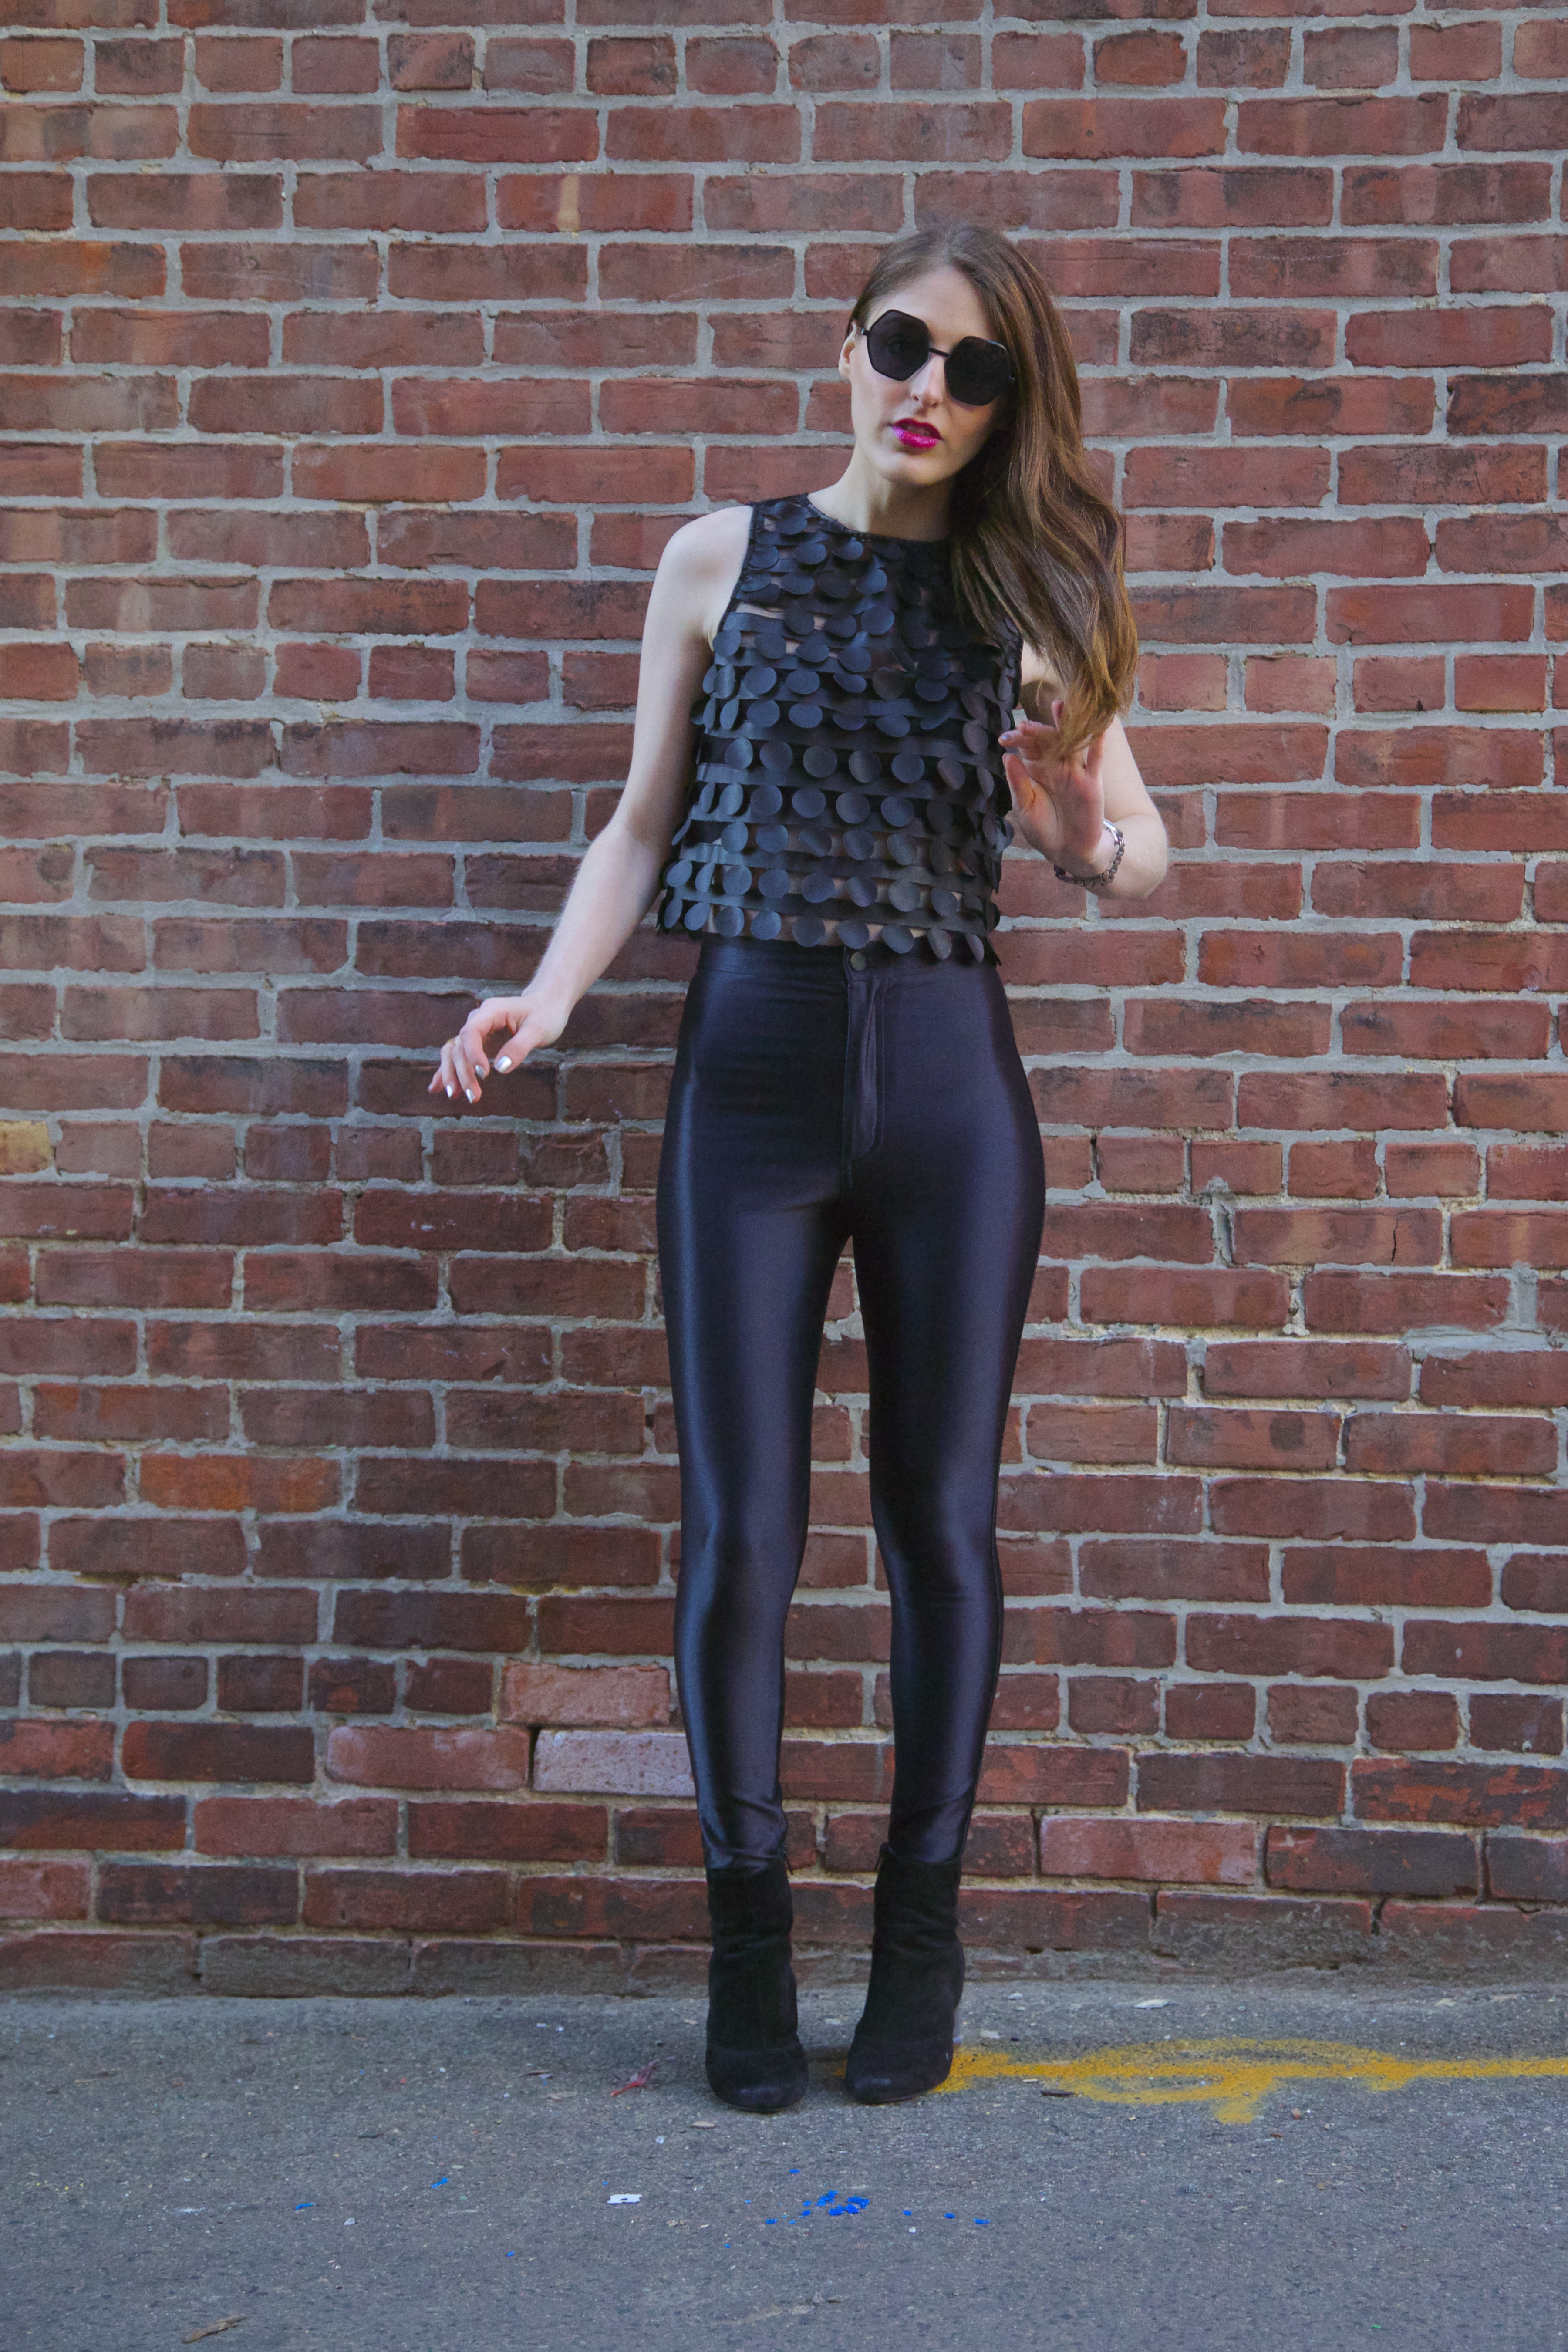 Disco Pants Day Or Night Annie S Fashion Sauce